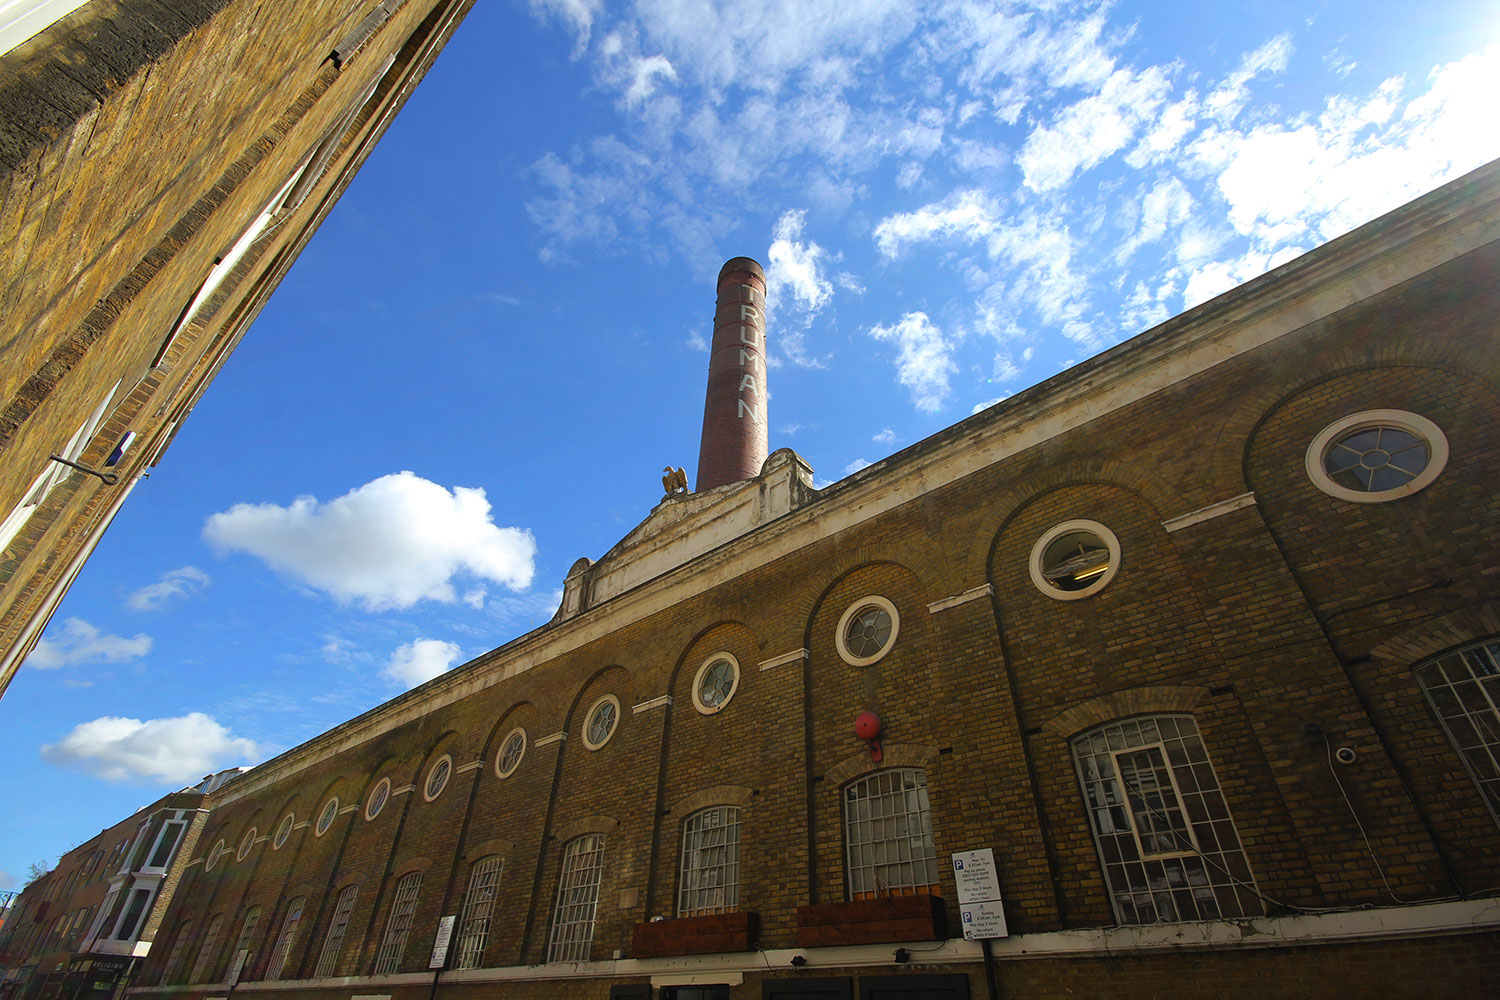 Old Truman Brewery, Brick Lane, East London, Spitalfields